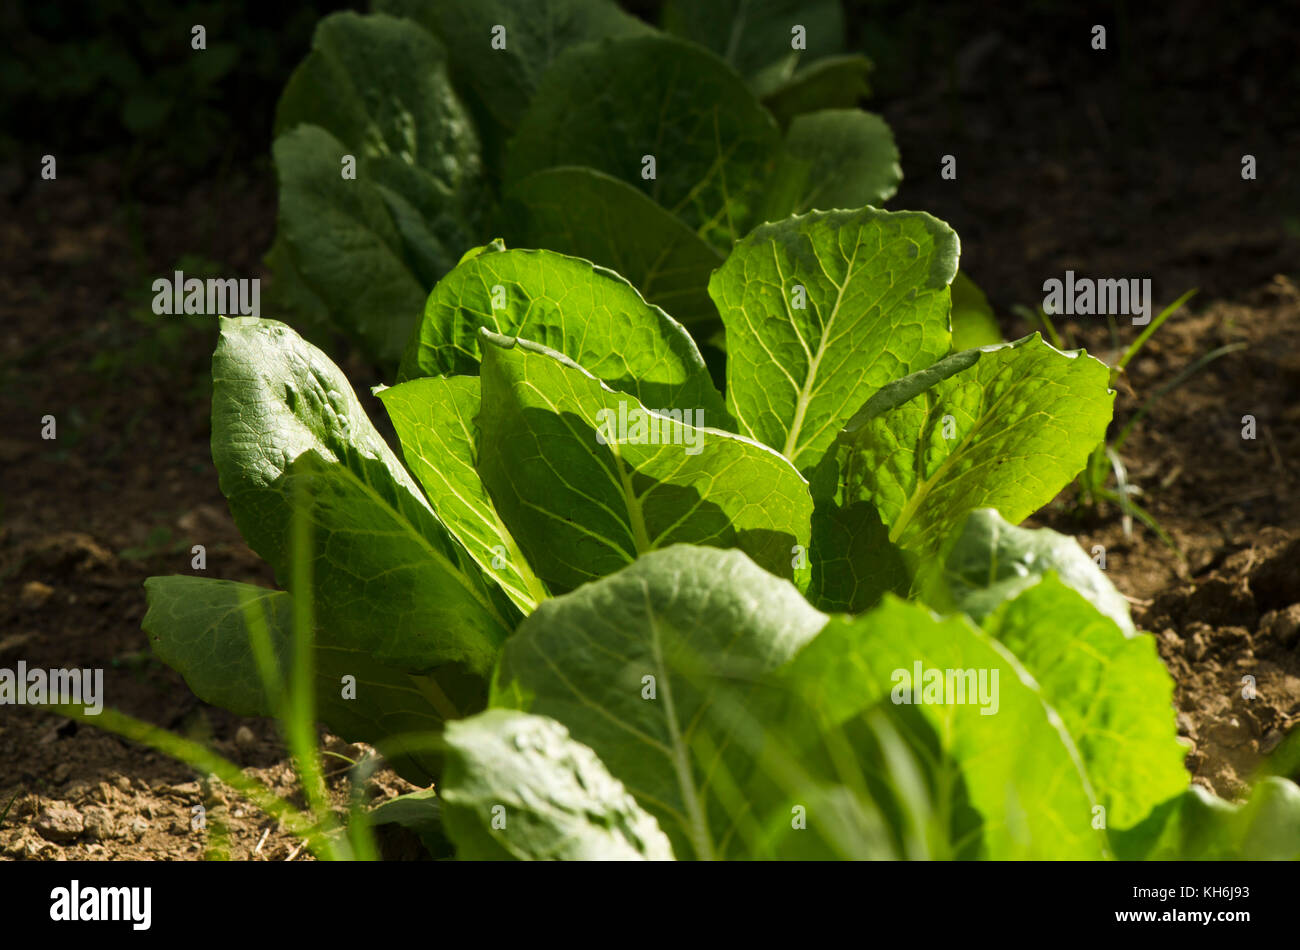 how to grow romaine lettuce in water